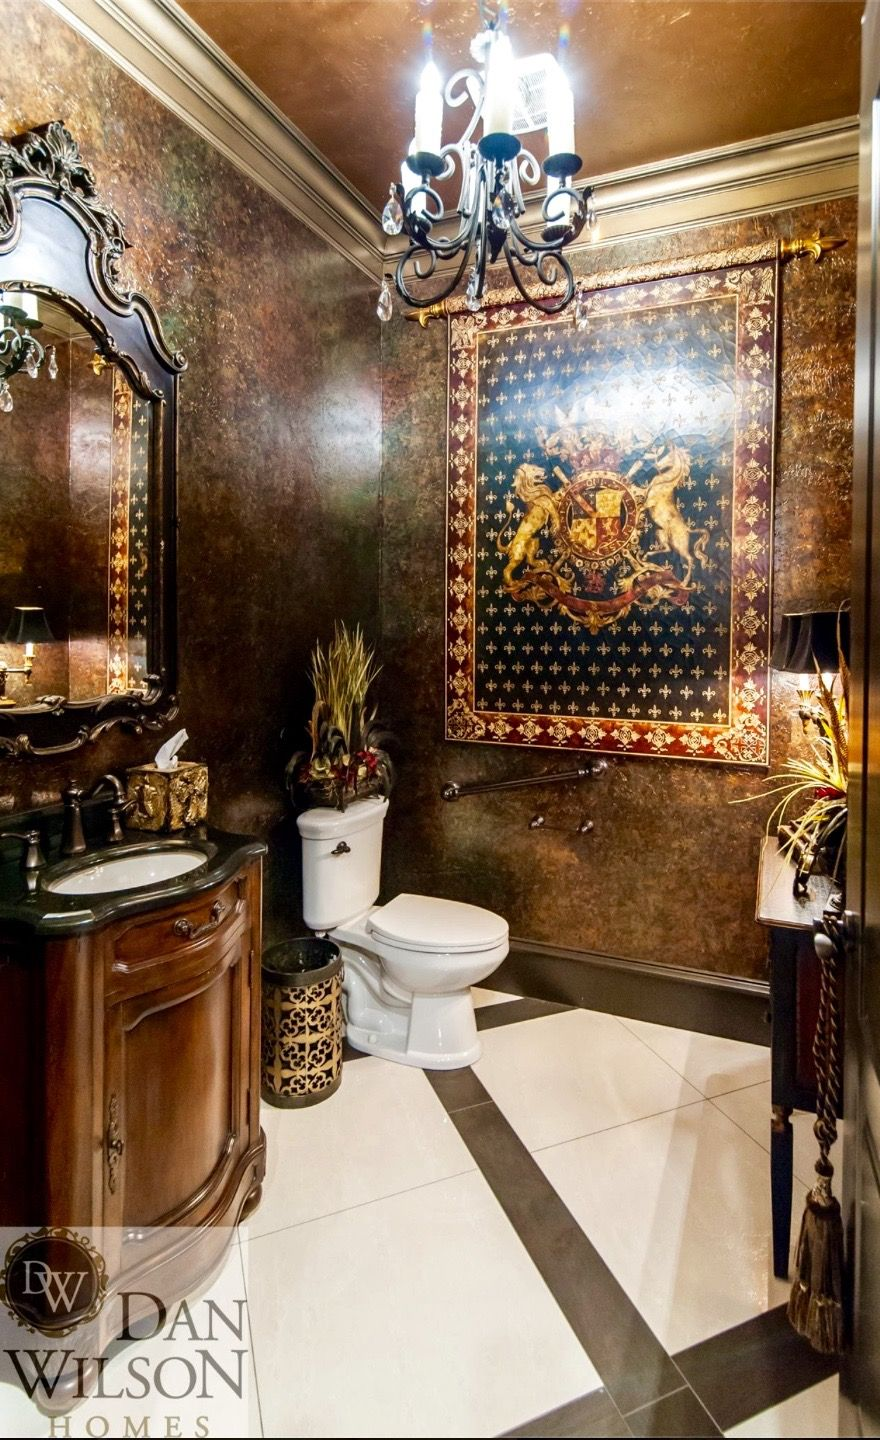 Tuscan decor bathroom - Find This Pin And More On Tuscan Style Tuscan Old World Decor Bathroom